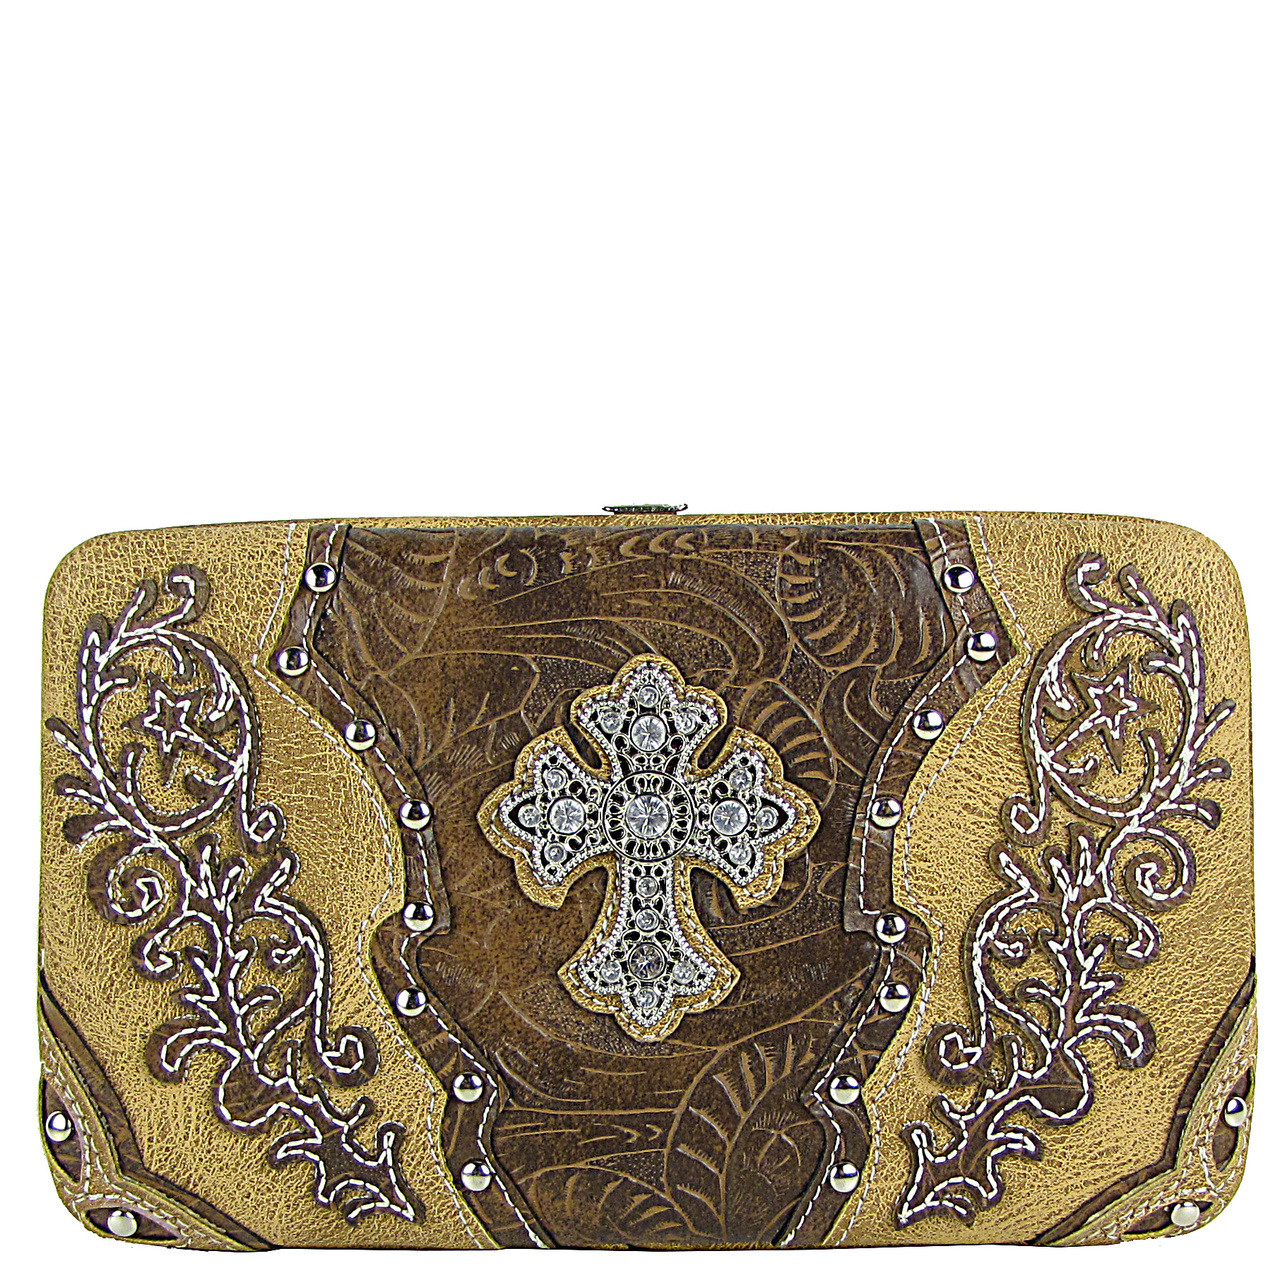 TAN STUDDED RHINESTONE TOOLED CROSS LOOK FLAT THICK WALLET FW2-04121TAN